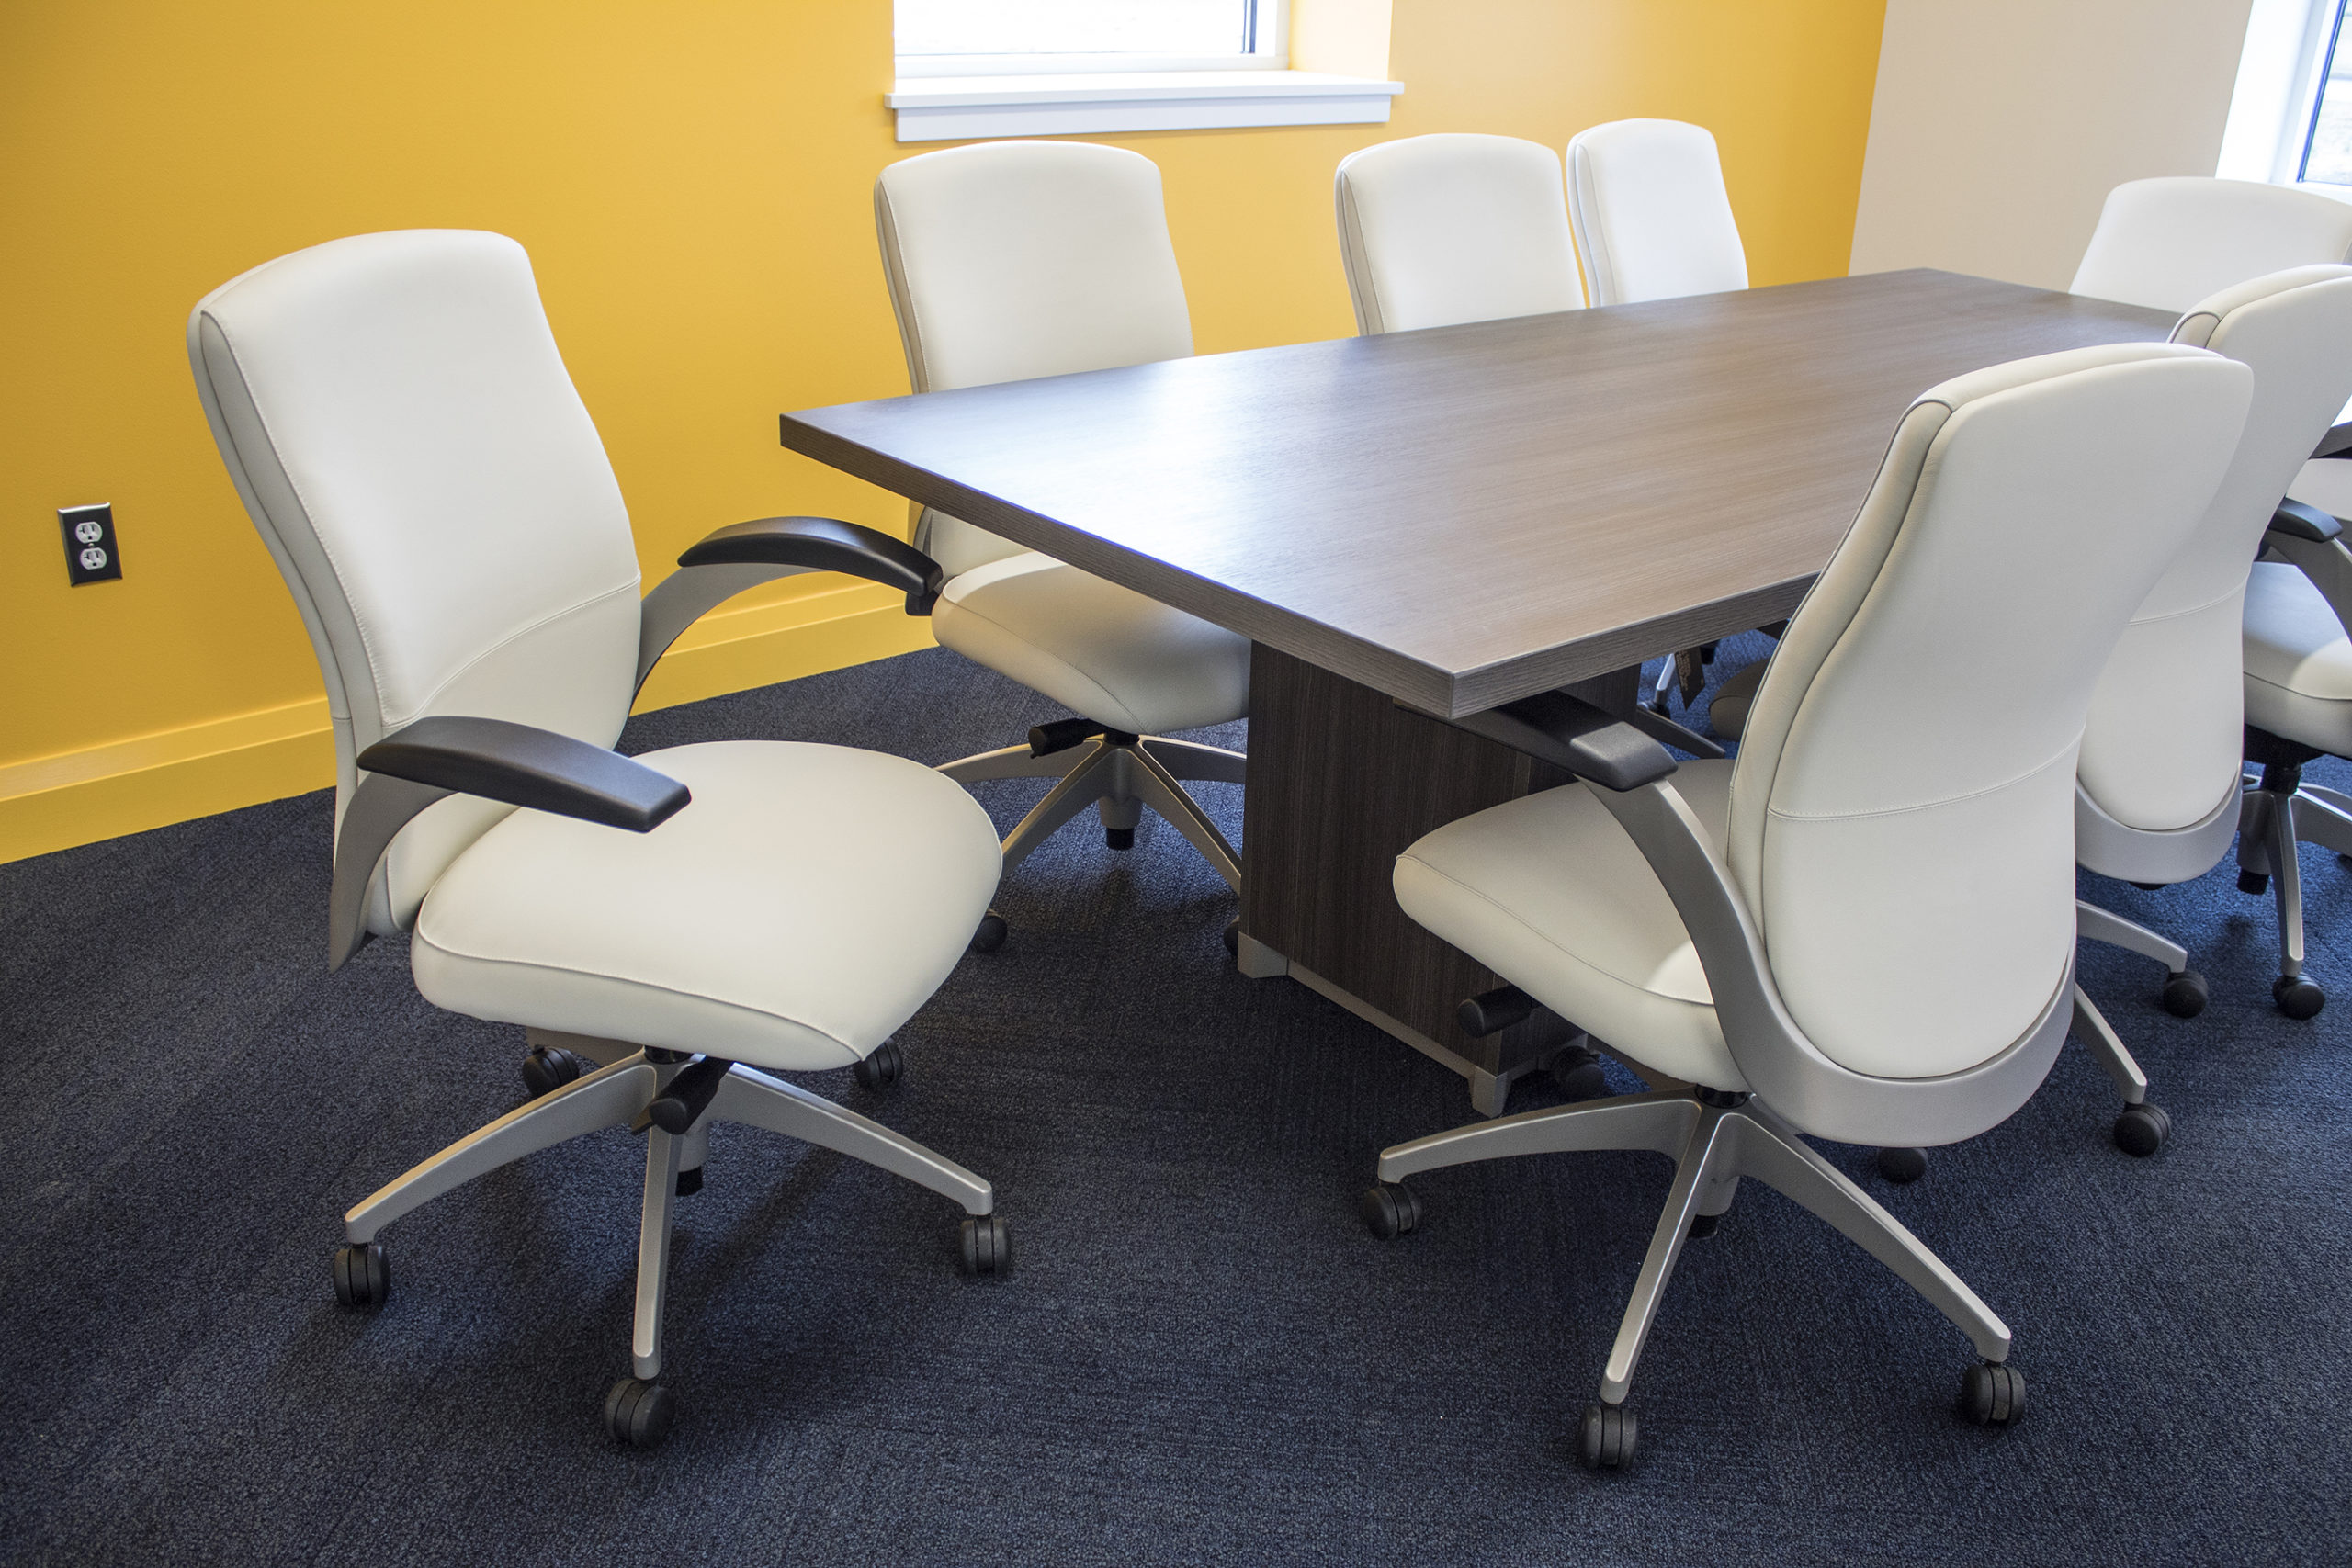 Transteck Conference Table and Chair